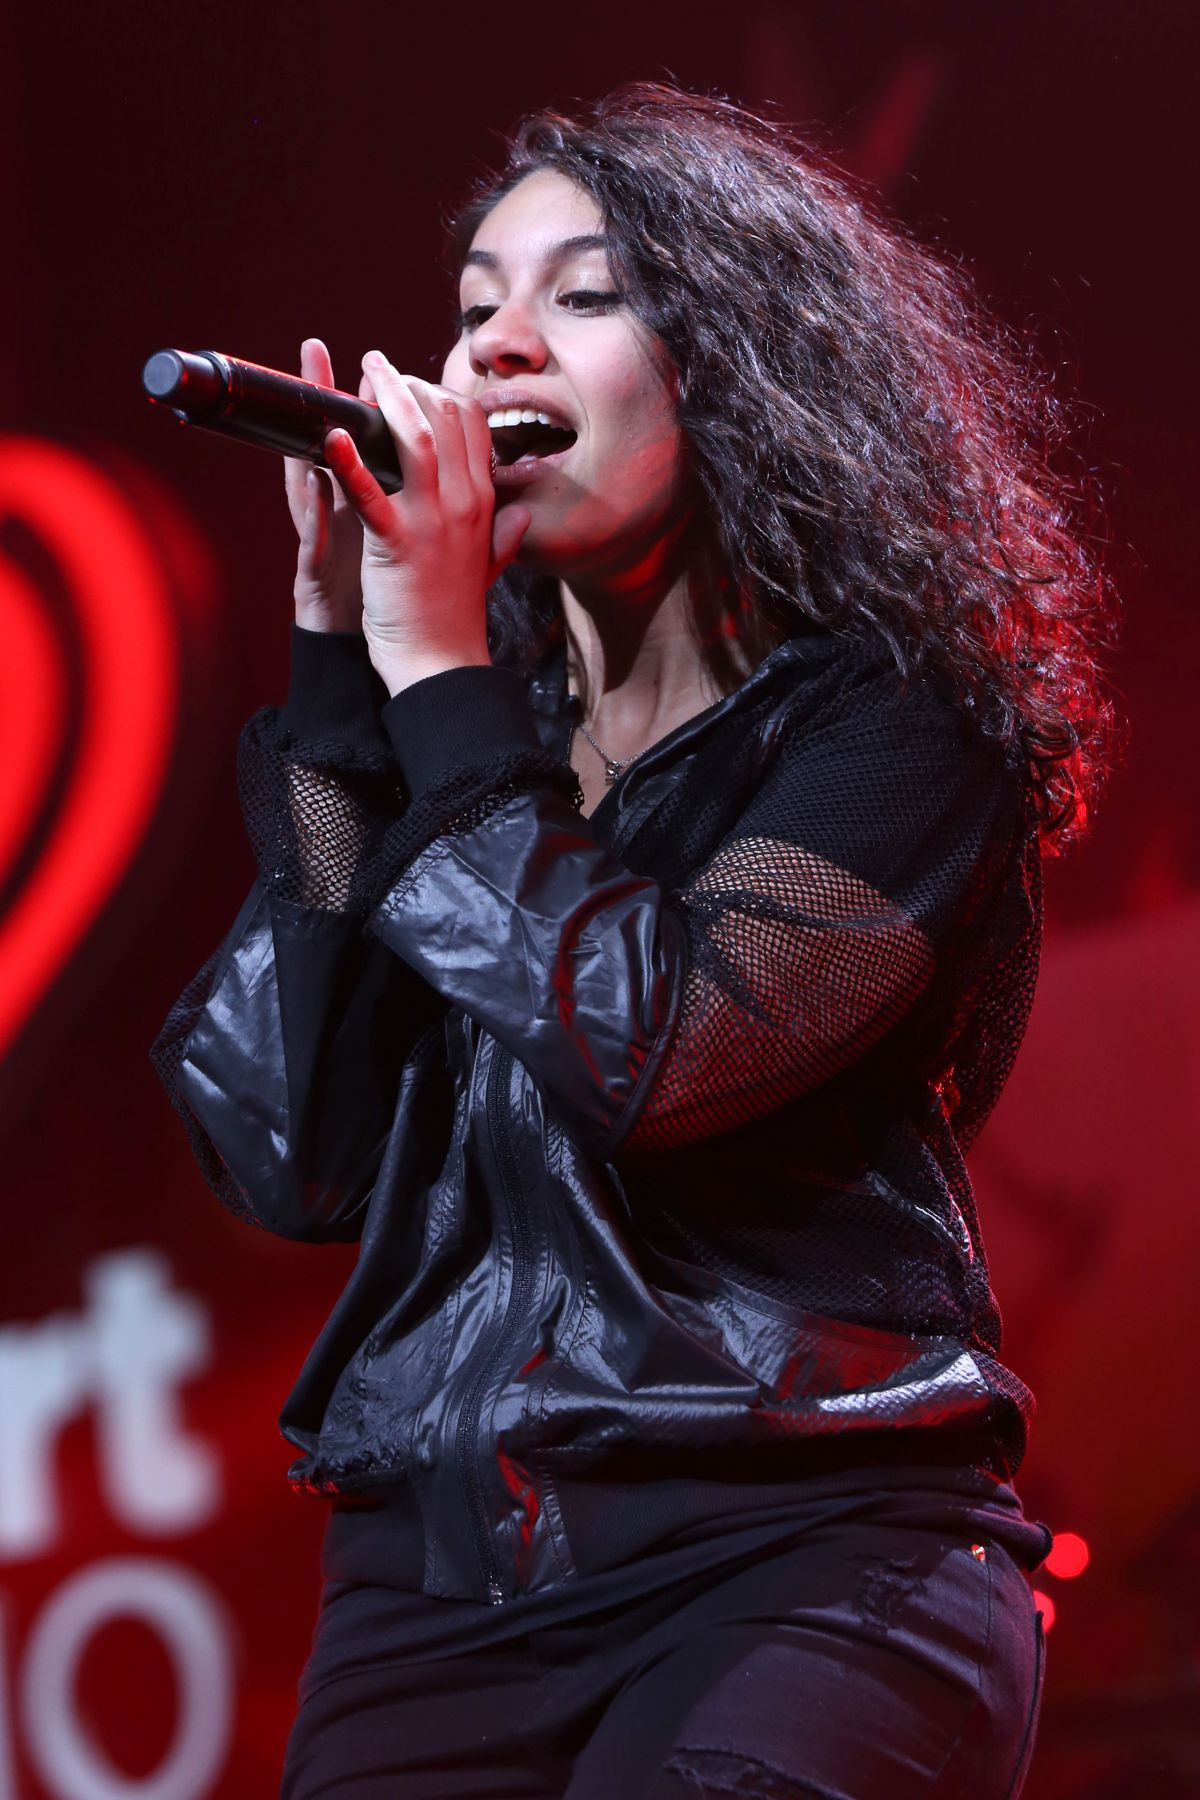 ALESSIA CARA at Q102